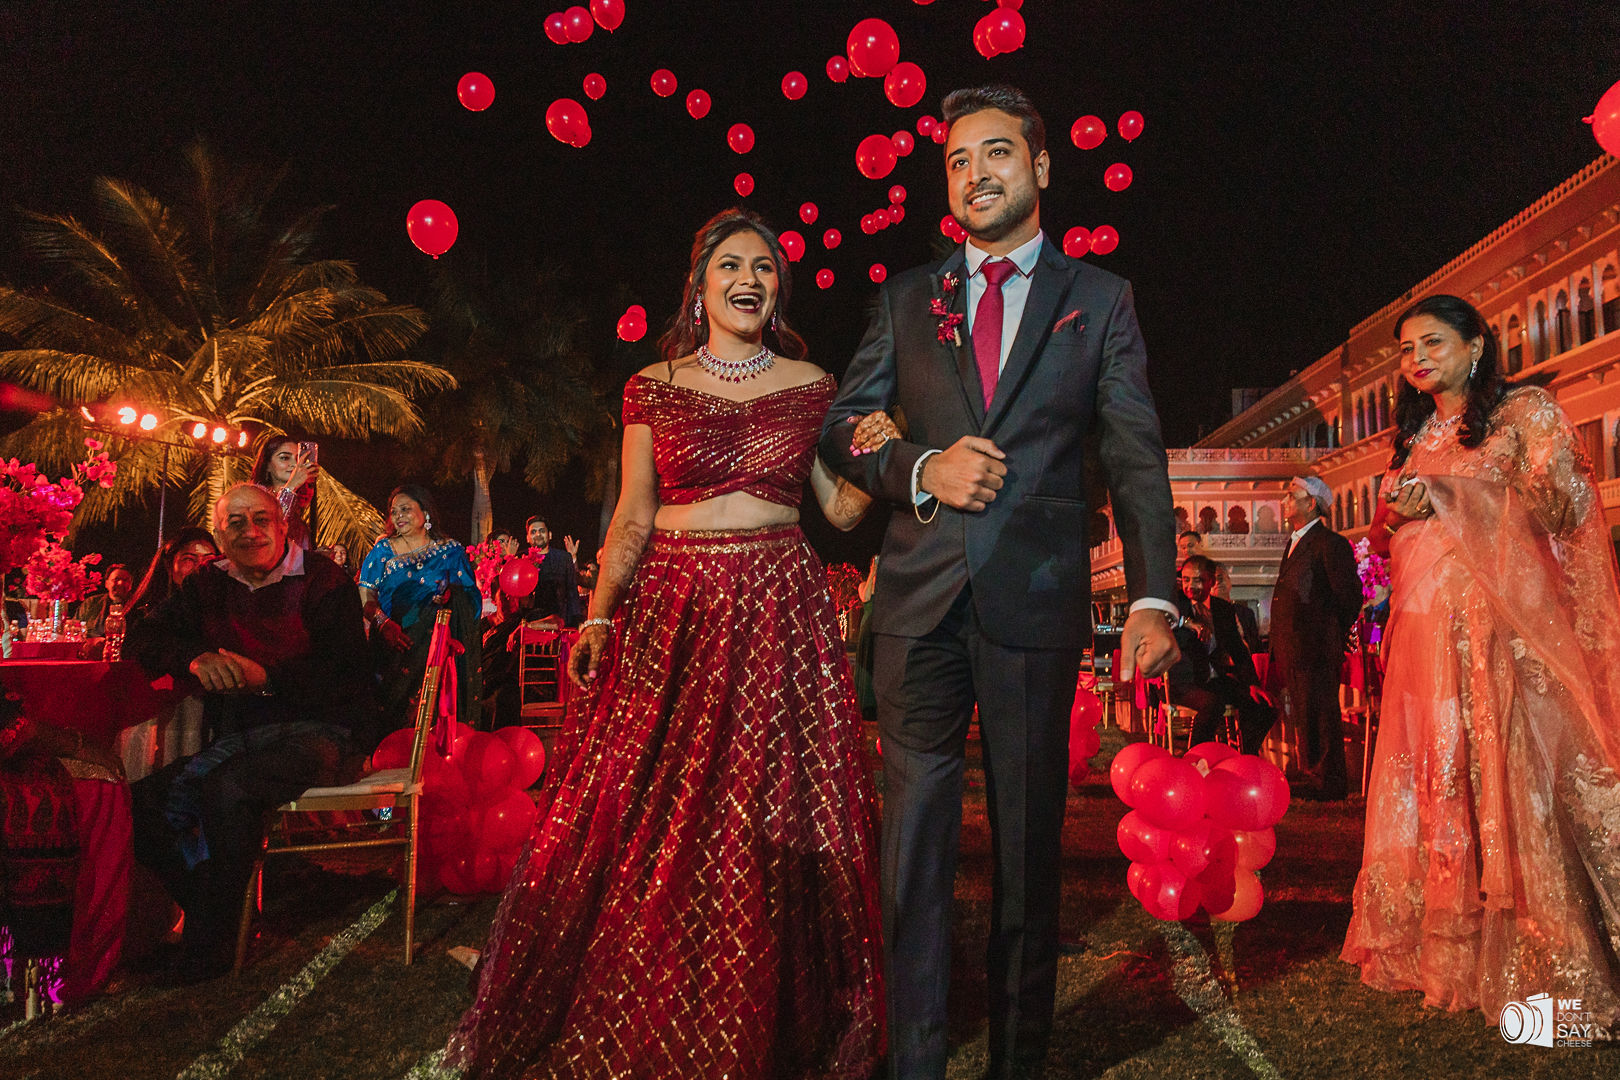 couple in contrasting red and black outfits